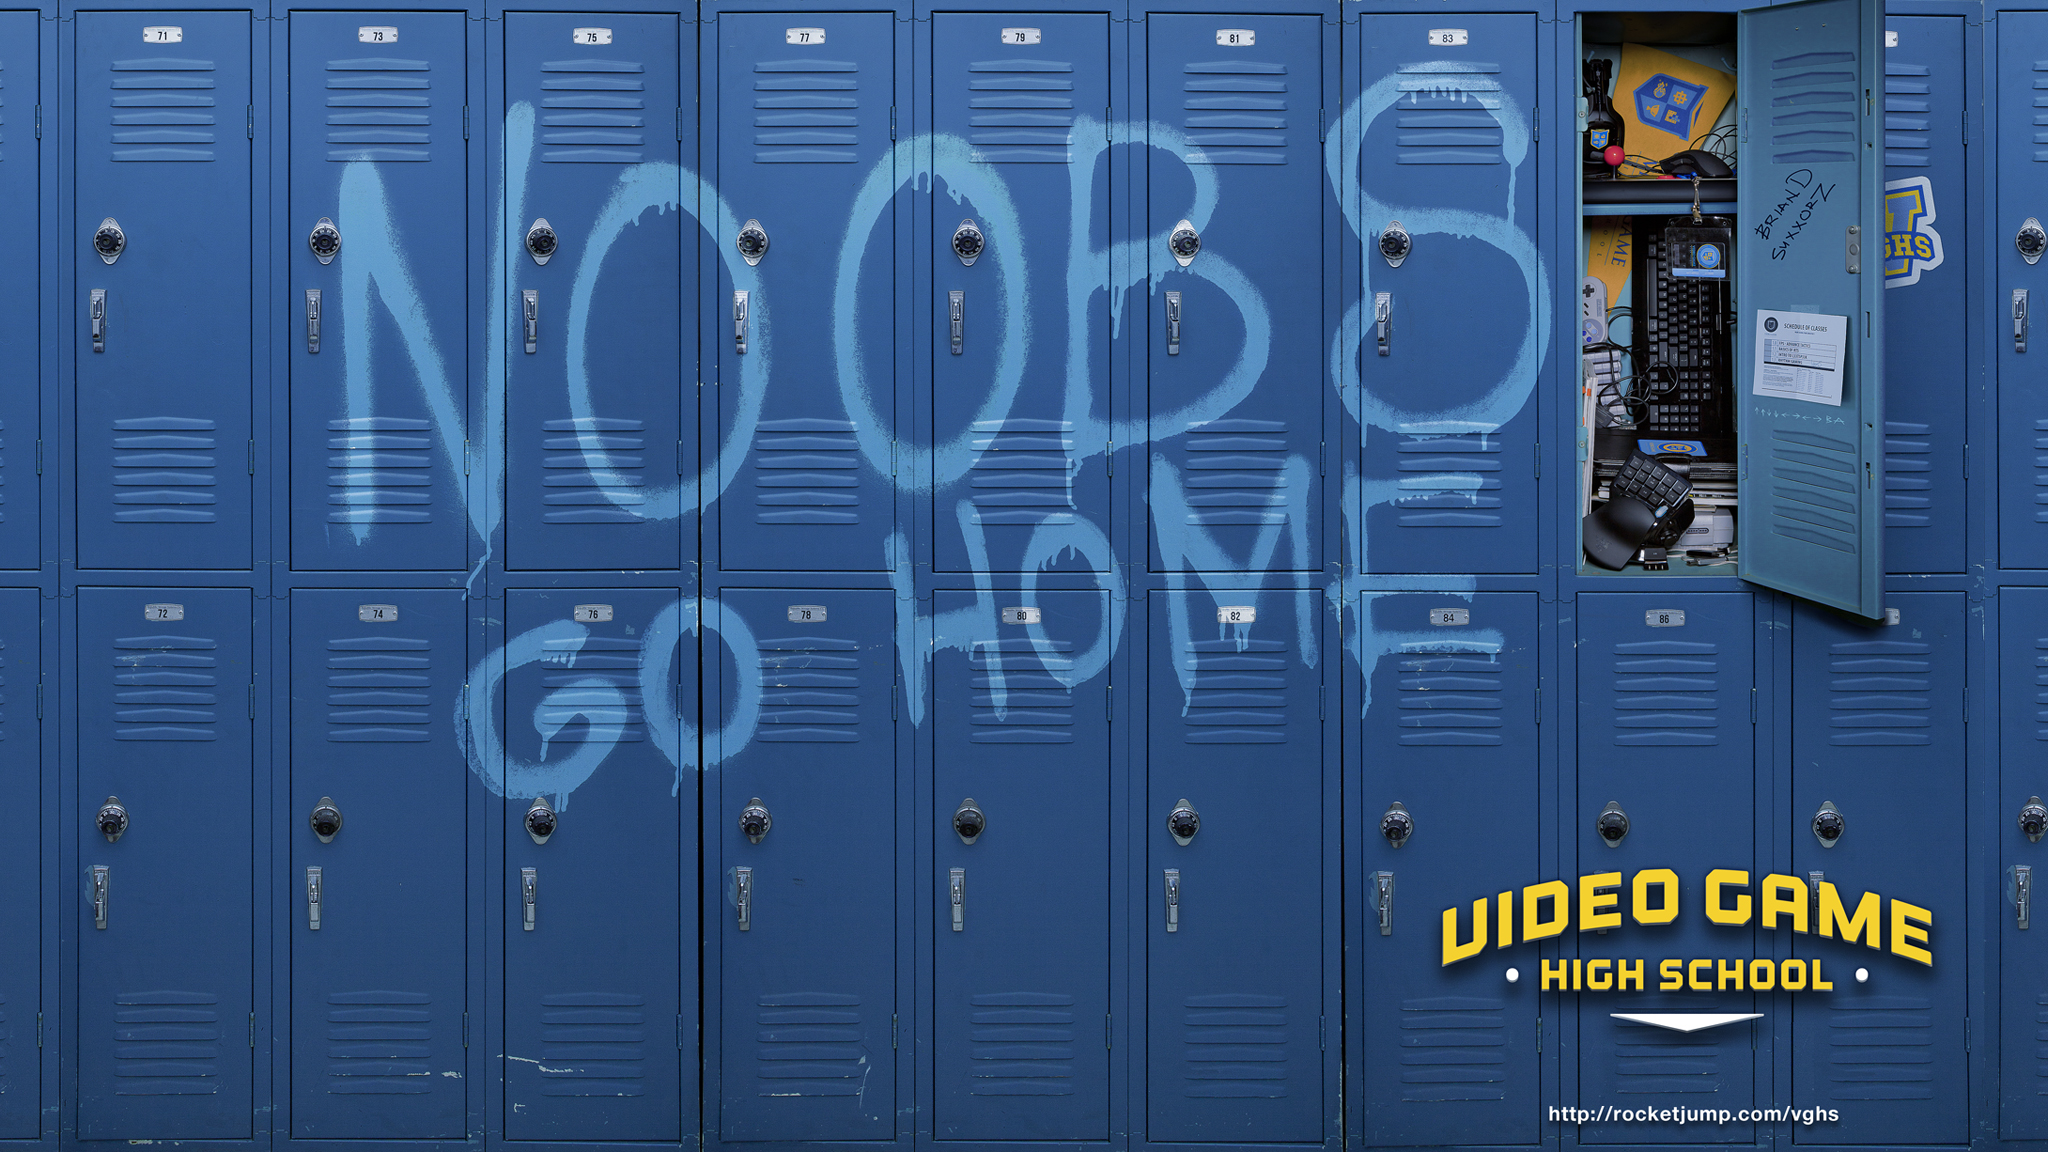 vghs wallpaper - photo #13